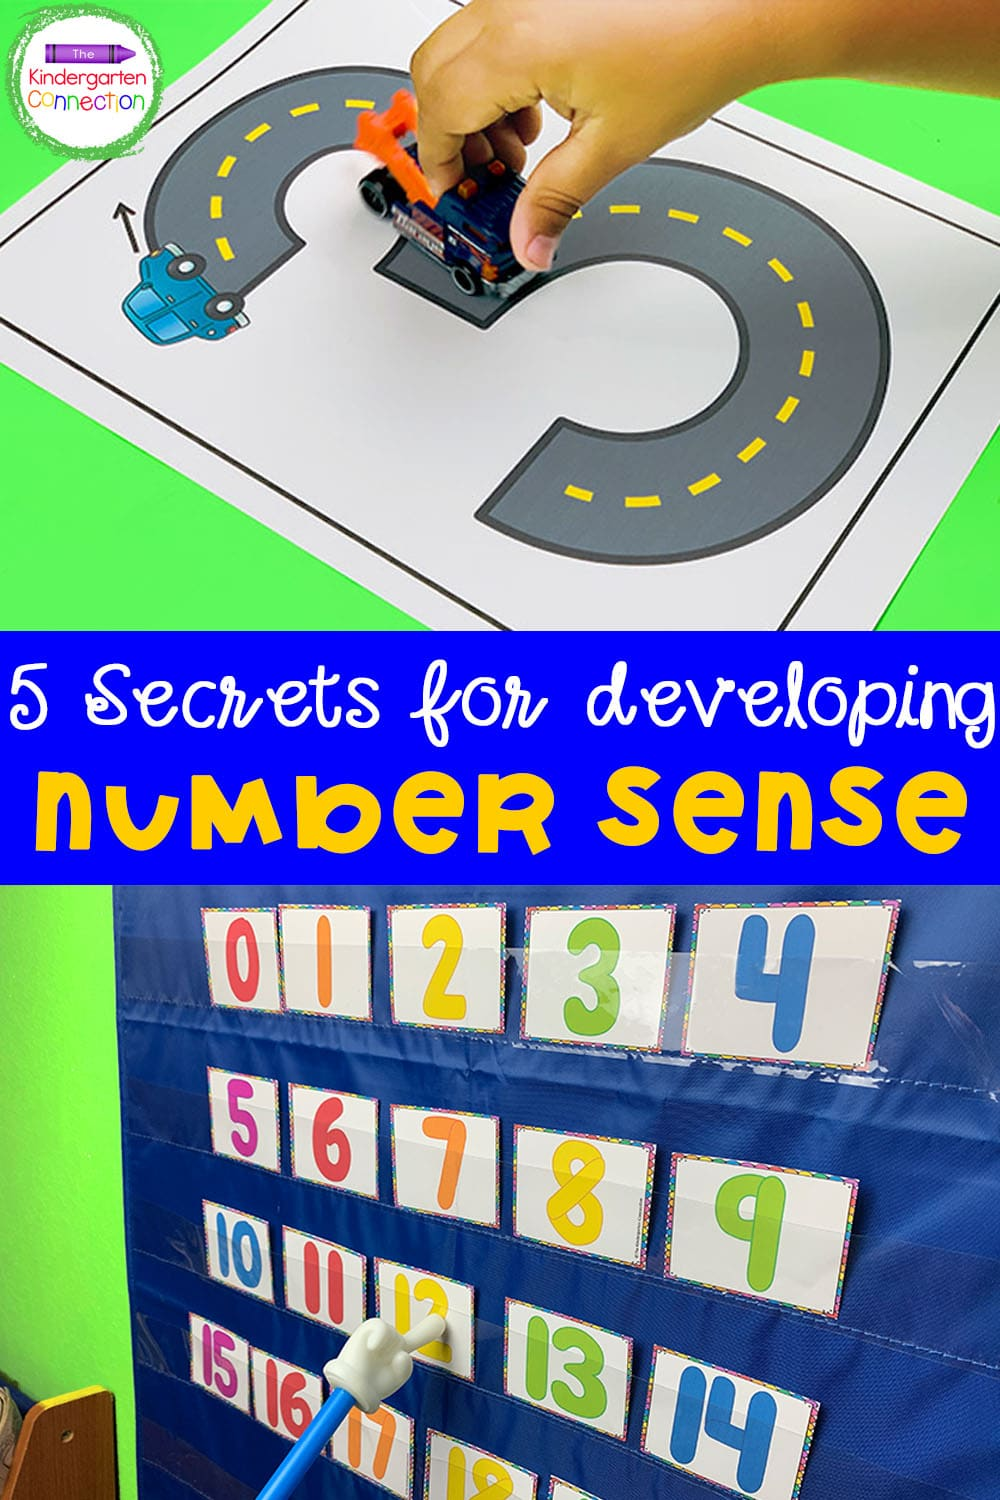 What is number sense and how do you develop it in students? Check out these important tips for developing numbers skills!